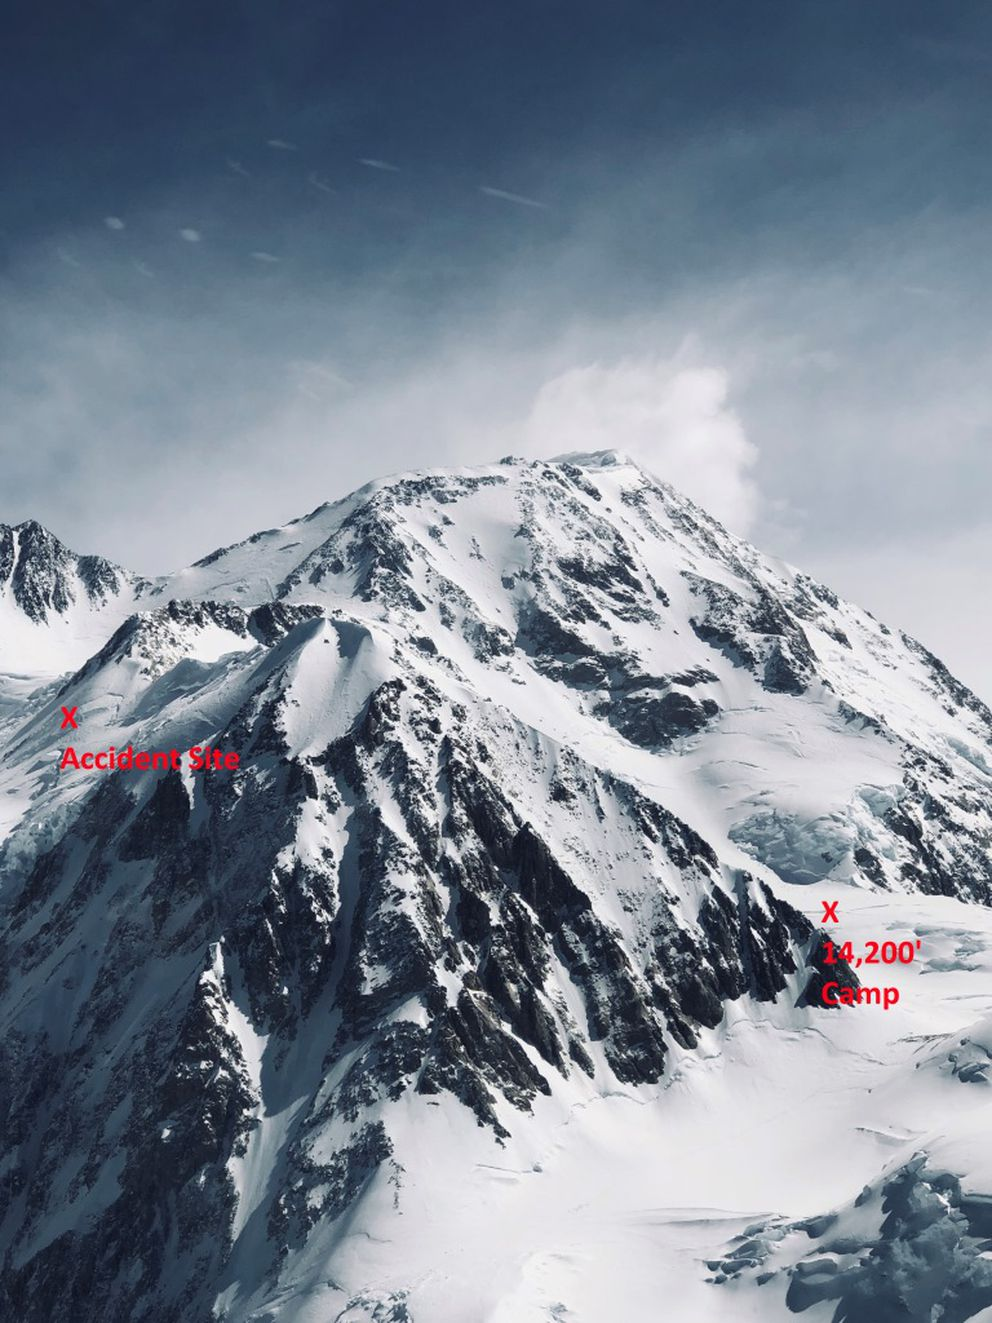 The location of the accident on the West Buttress route that left a woman with spinal injuries, relative to the 14,200-foot camp on Denali. (David Weber / National Park Service)